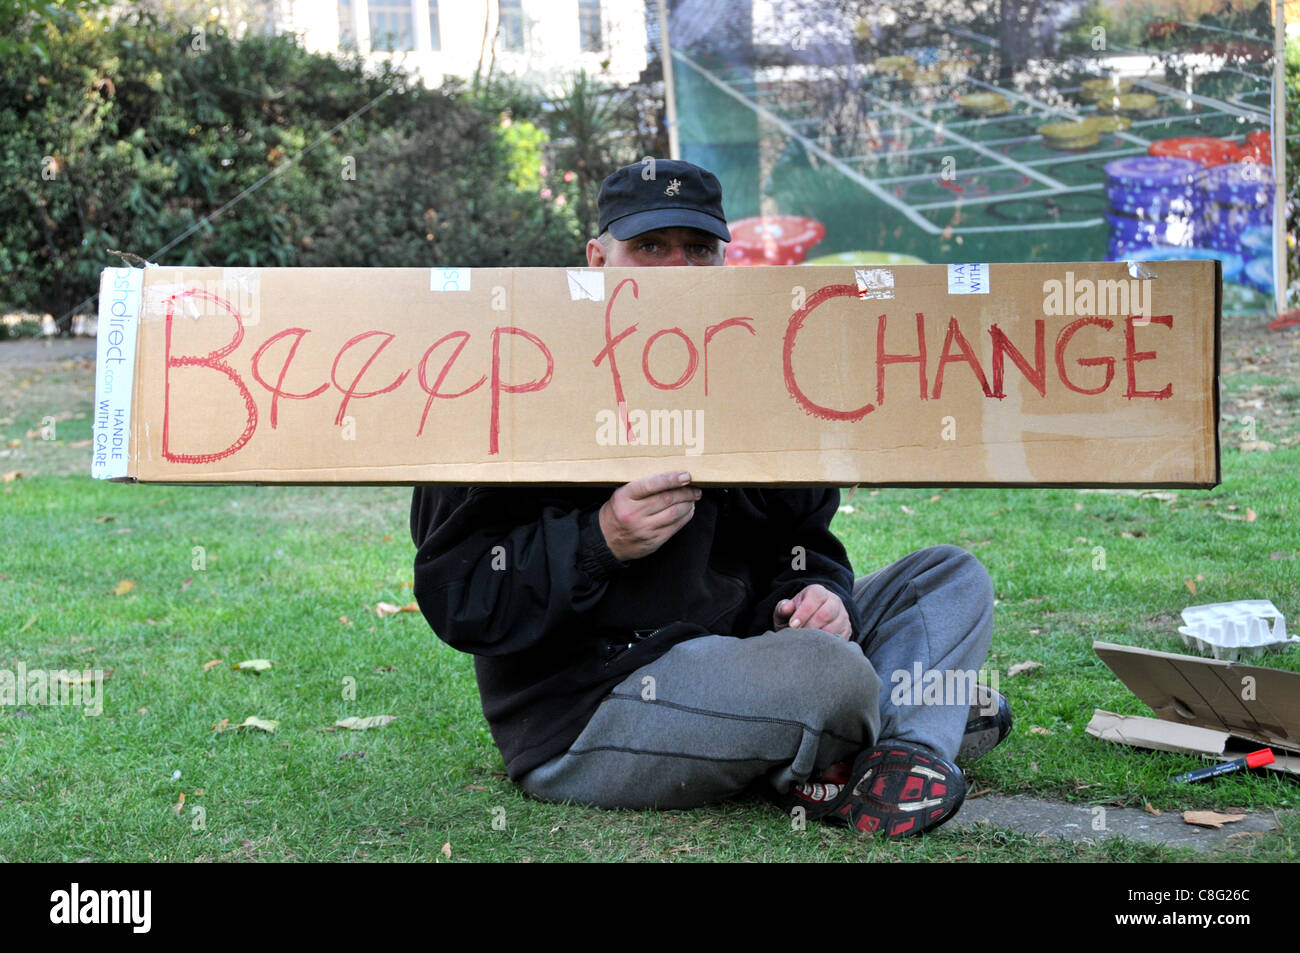 Beeep for change banner and a protester at The Occupy London protest spreads to Finsbury Square in the financial - Stock Image